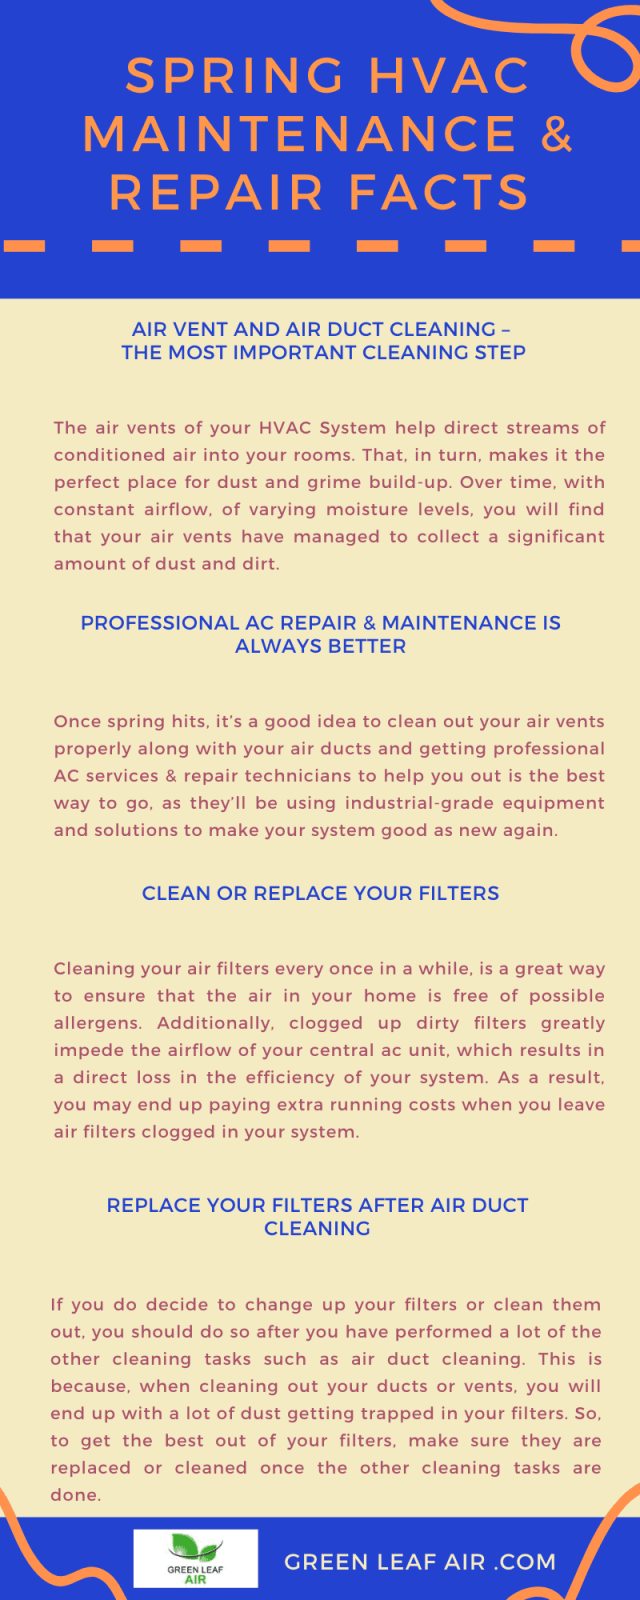 Spring HVAC Maintenance & Repair Facts